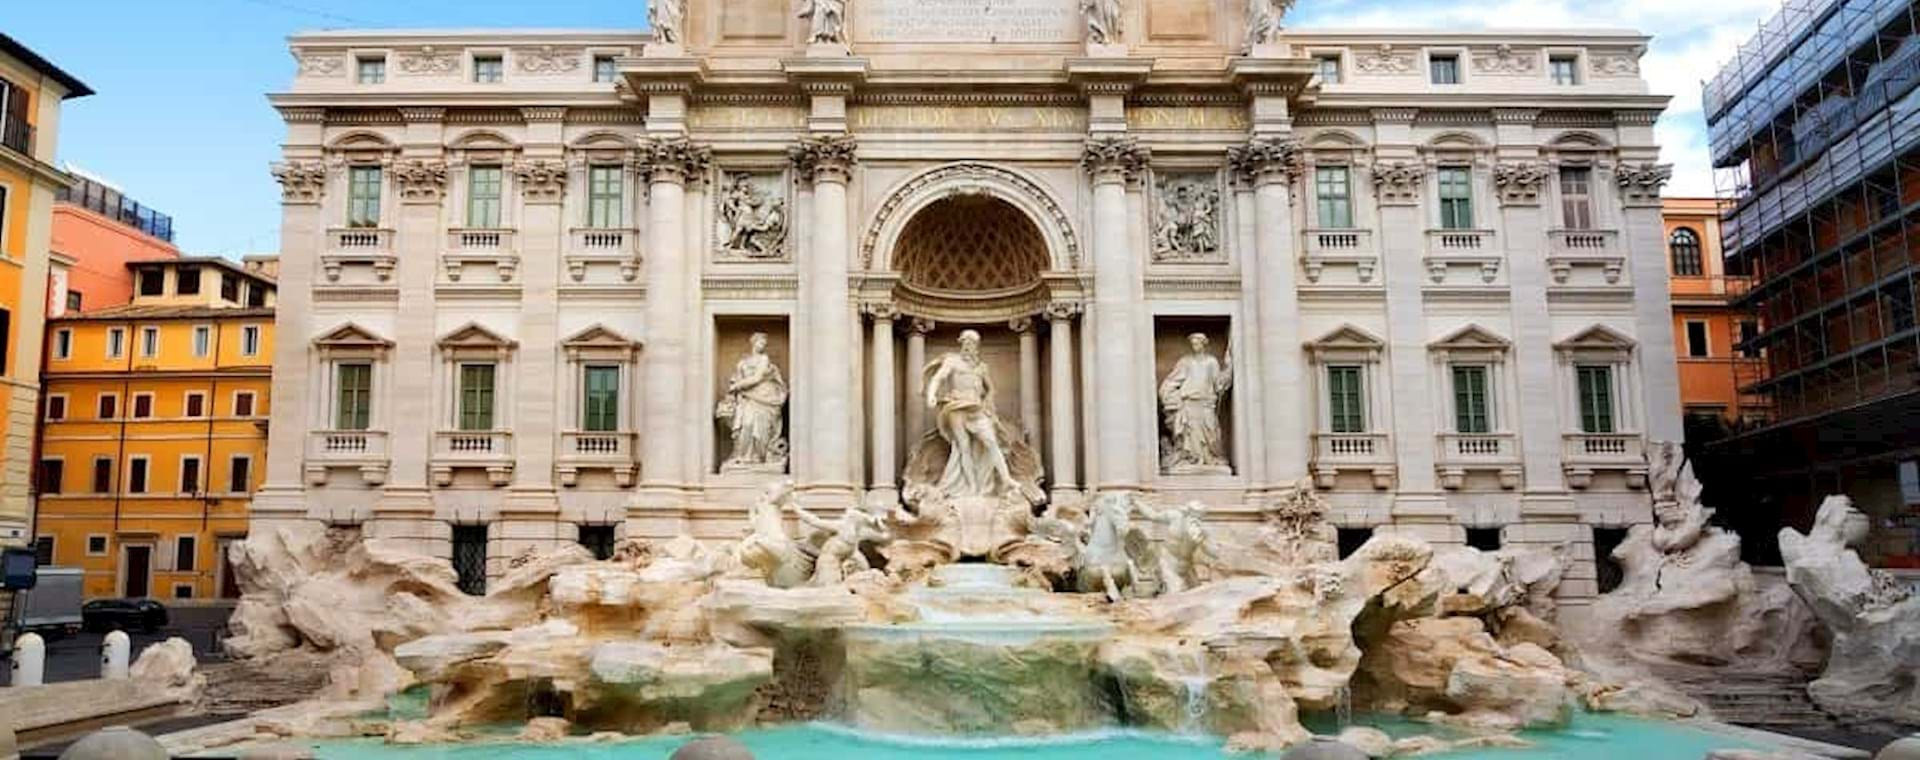 Stunning view of the Trevi Fountain